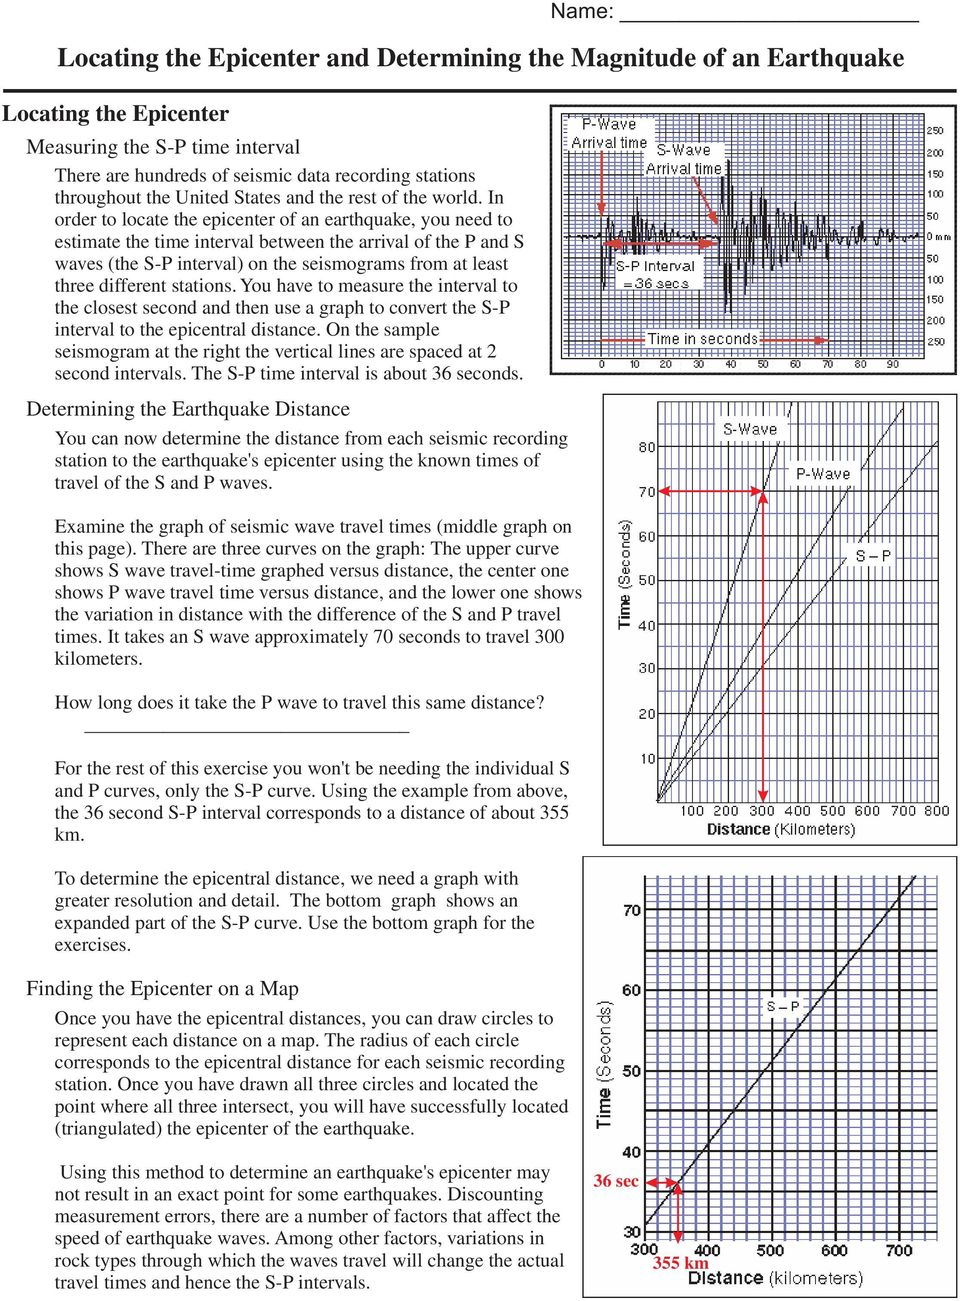 worksheet Find The Epicenter Worksheet locating the epicenter and determining magnitude of an in order to locate earthquake you need estimate time